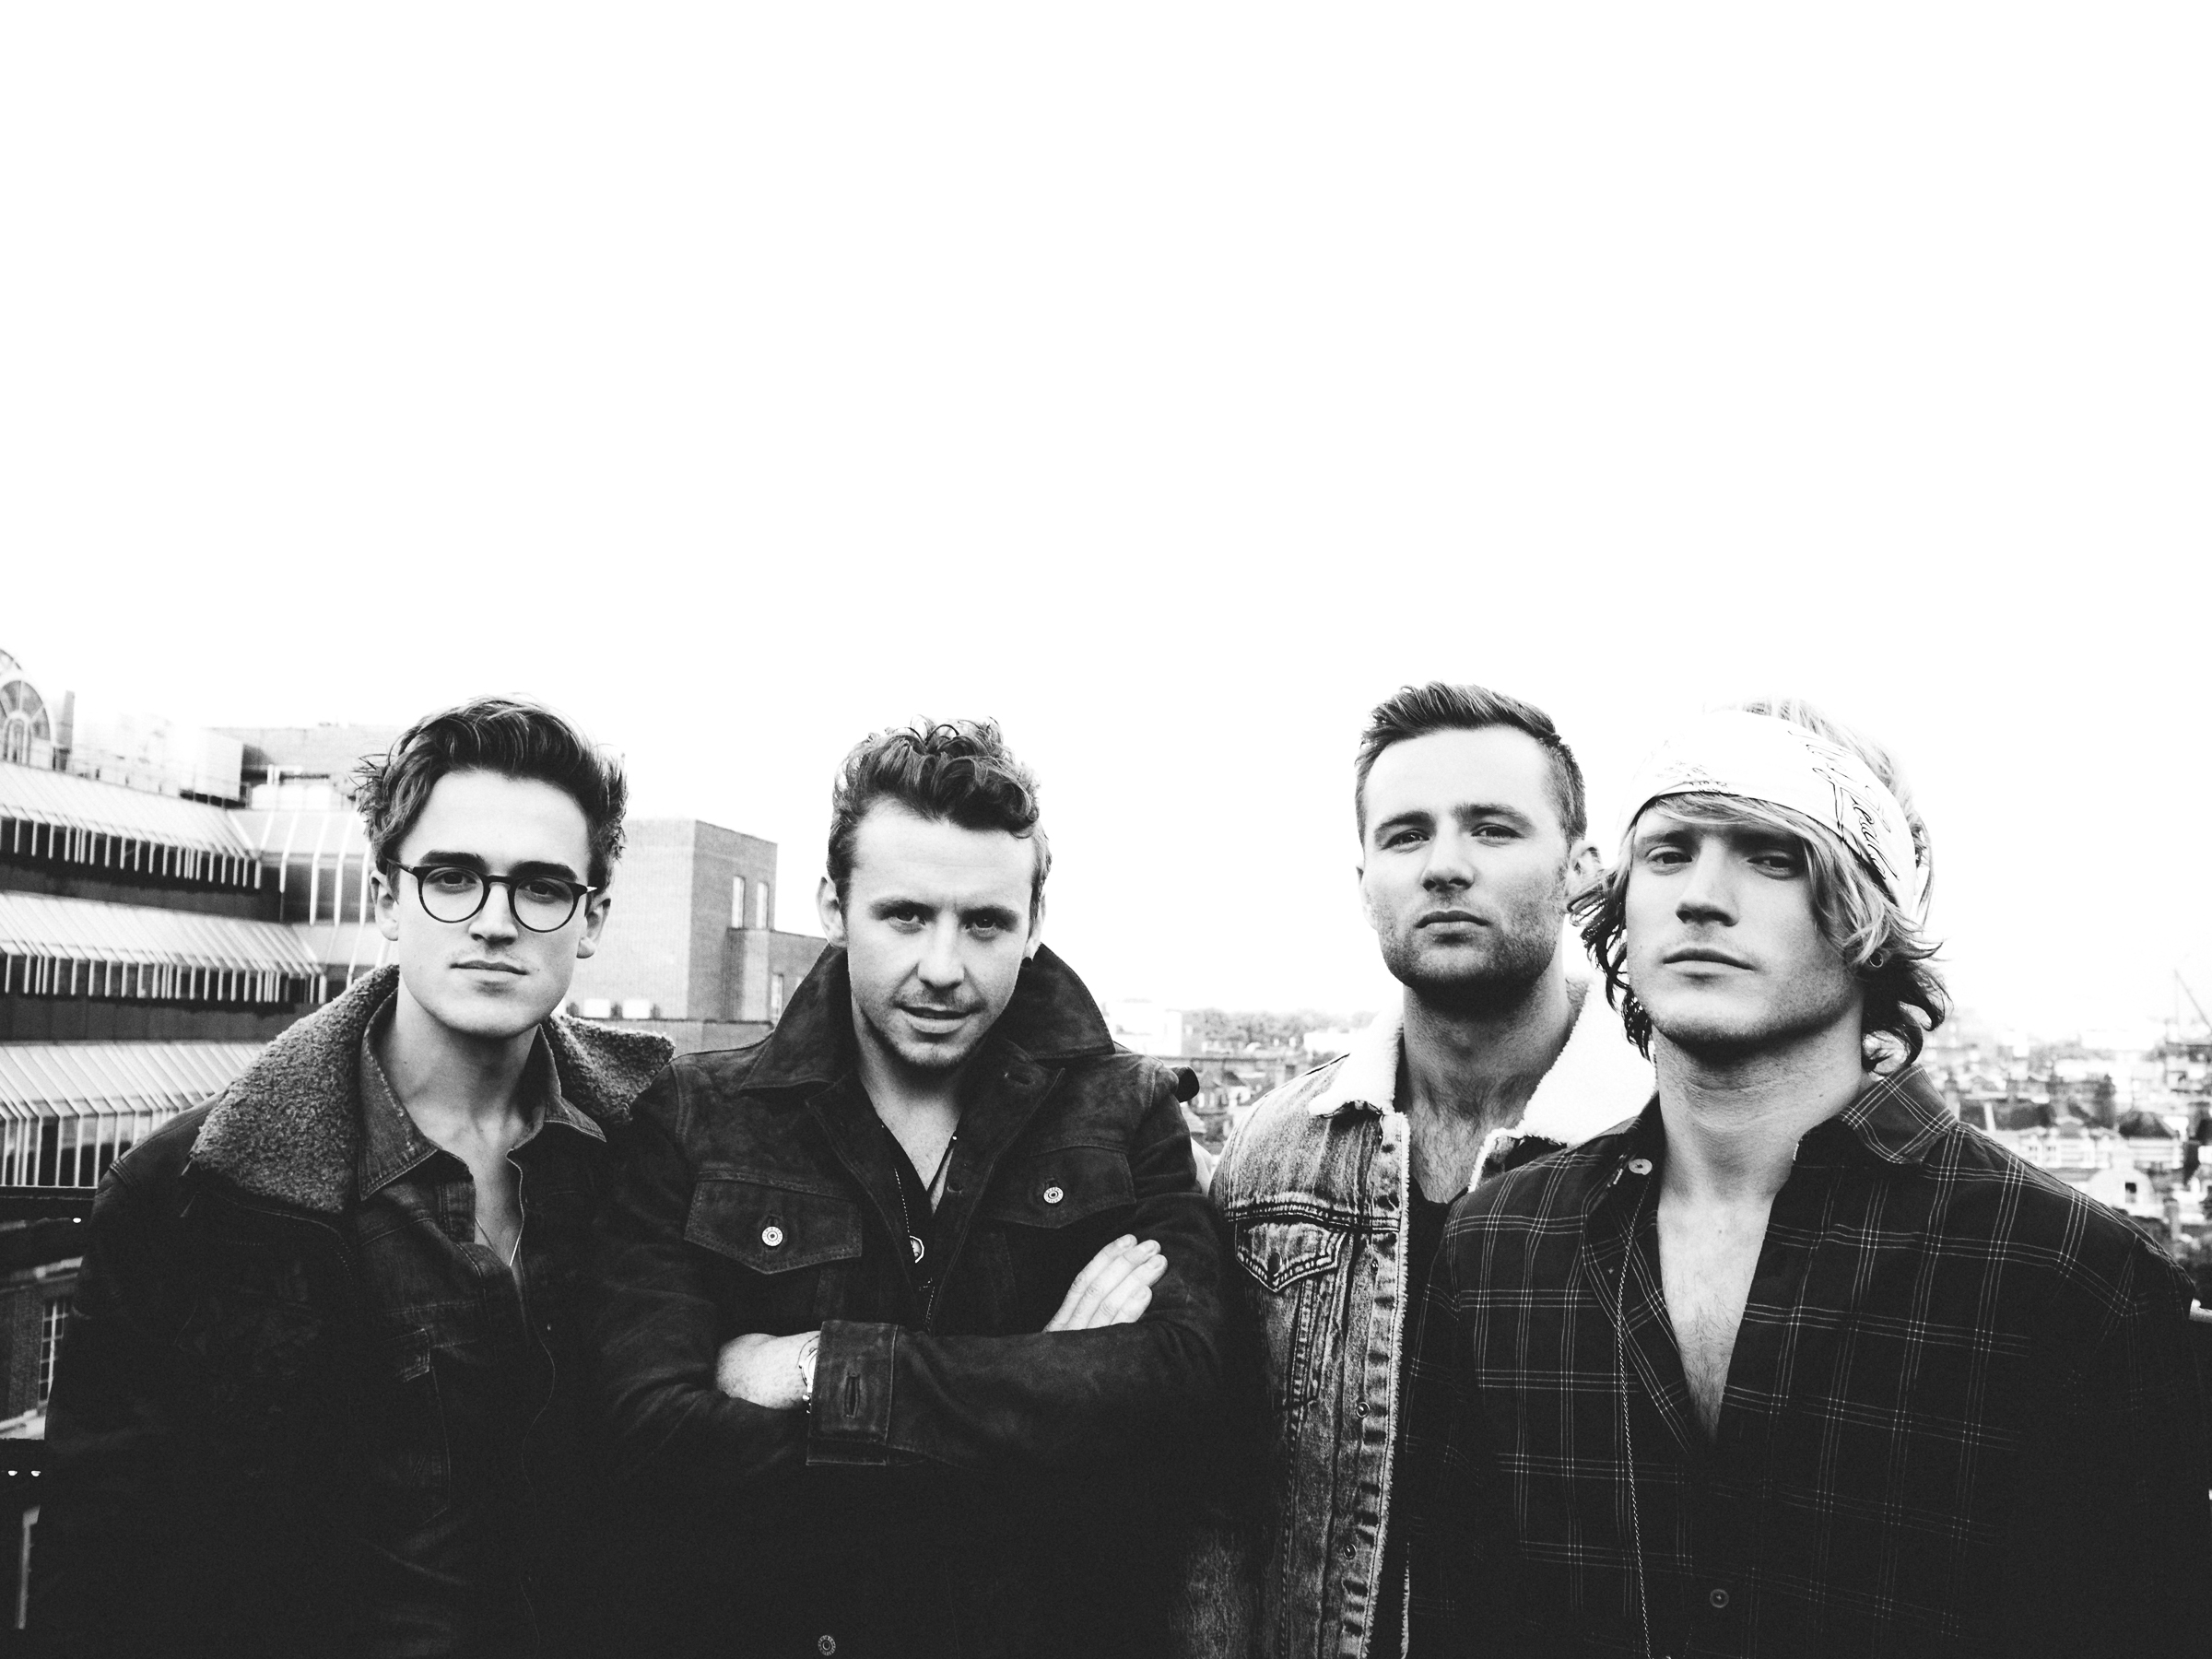 McFly McBusted Tom Fletcher Danny Jones Harry Judd Dougie Poynter Olympus PEN E-P5 Jay McLaughlin Drafted Magazine